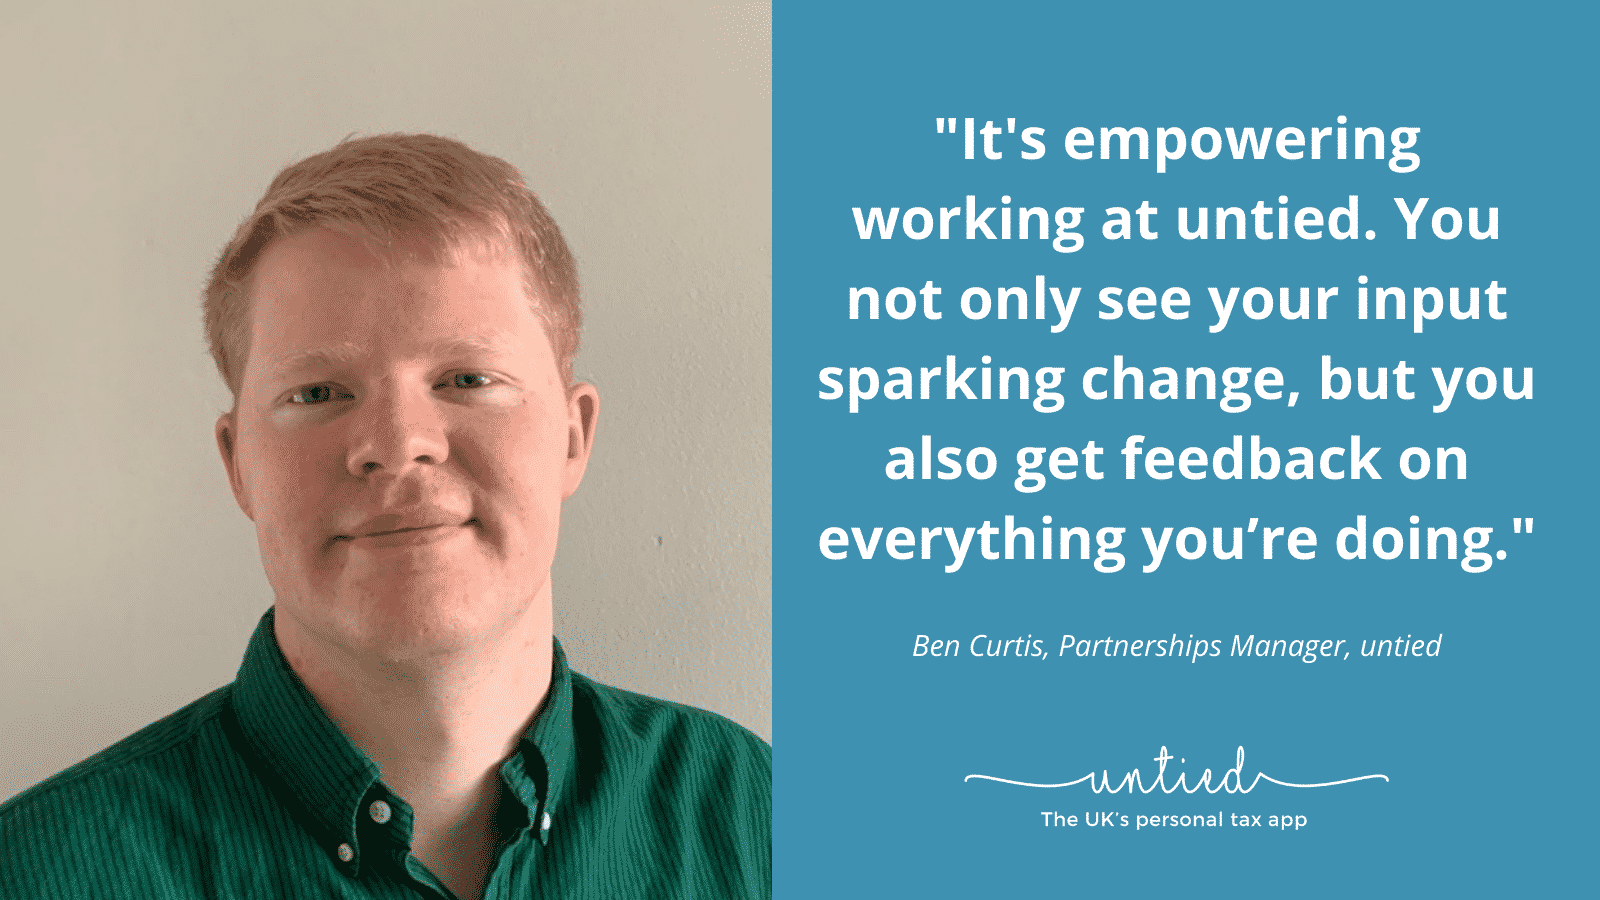 Meet the untied team – Ben Curtis, Partnerships Manager